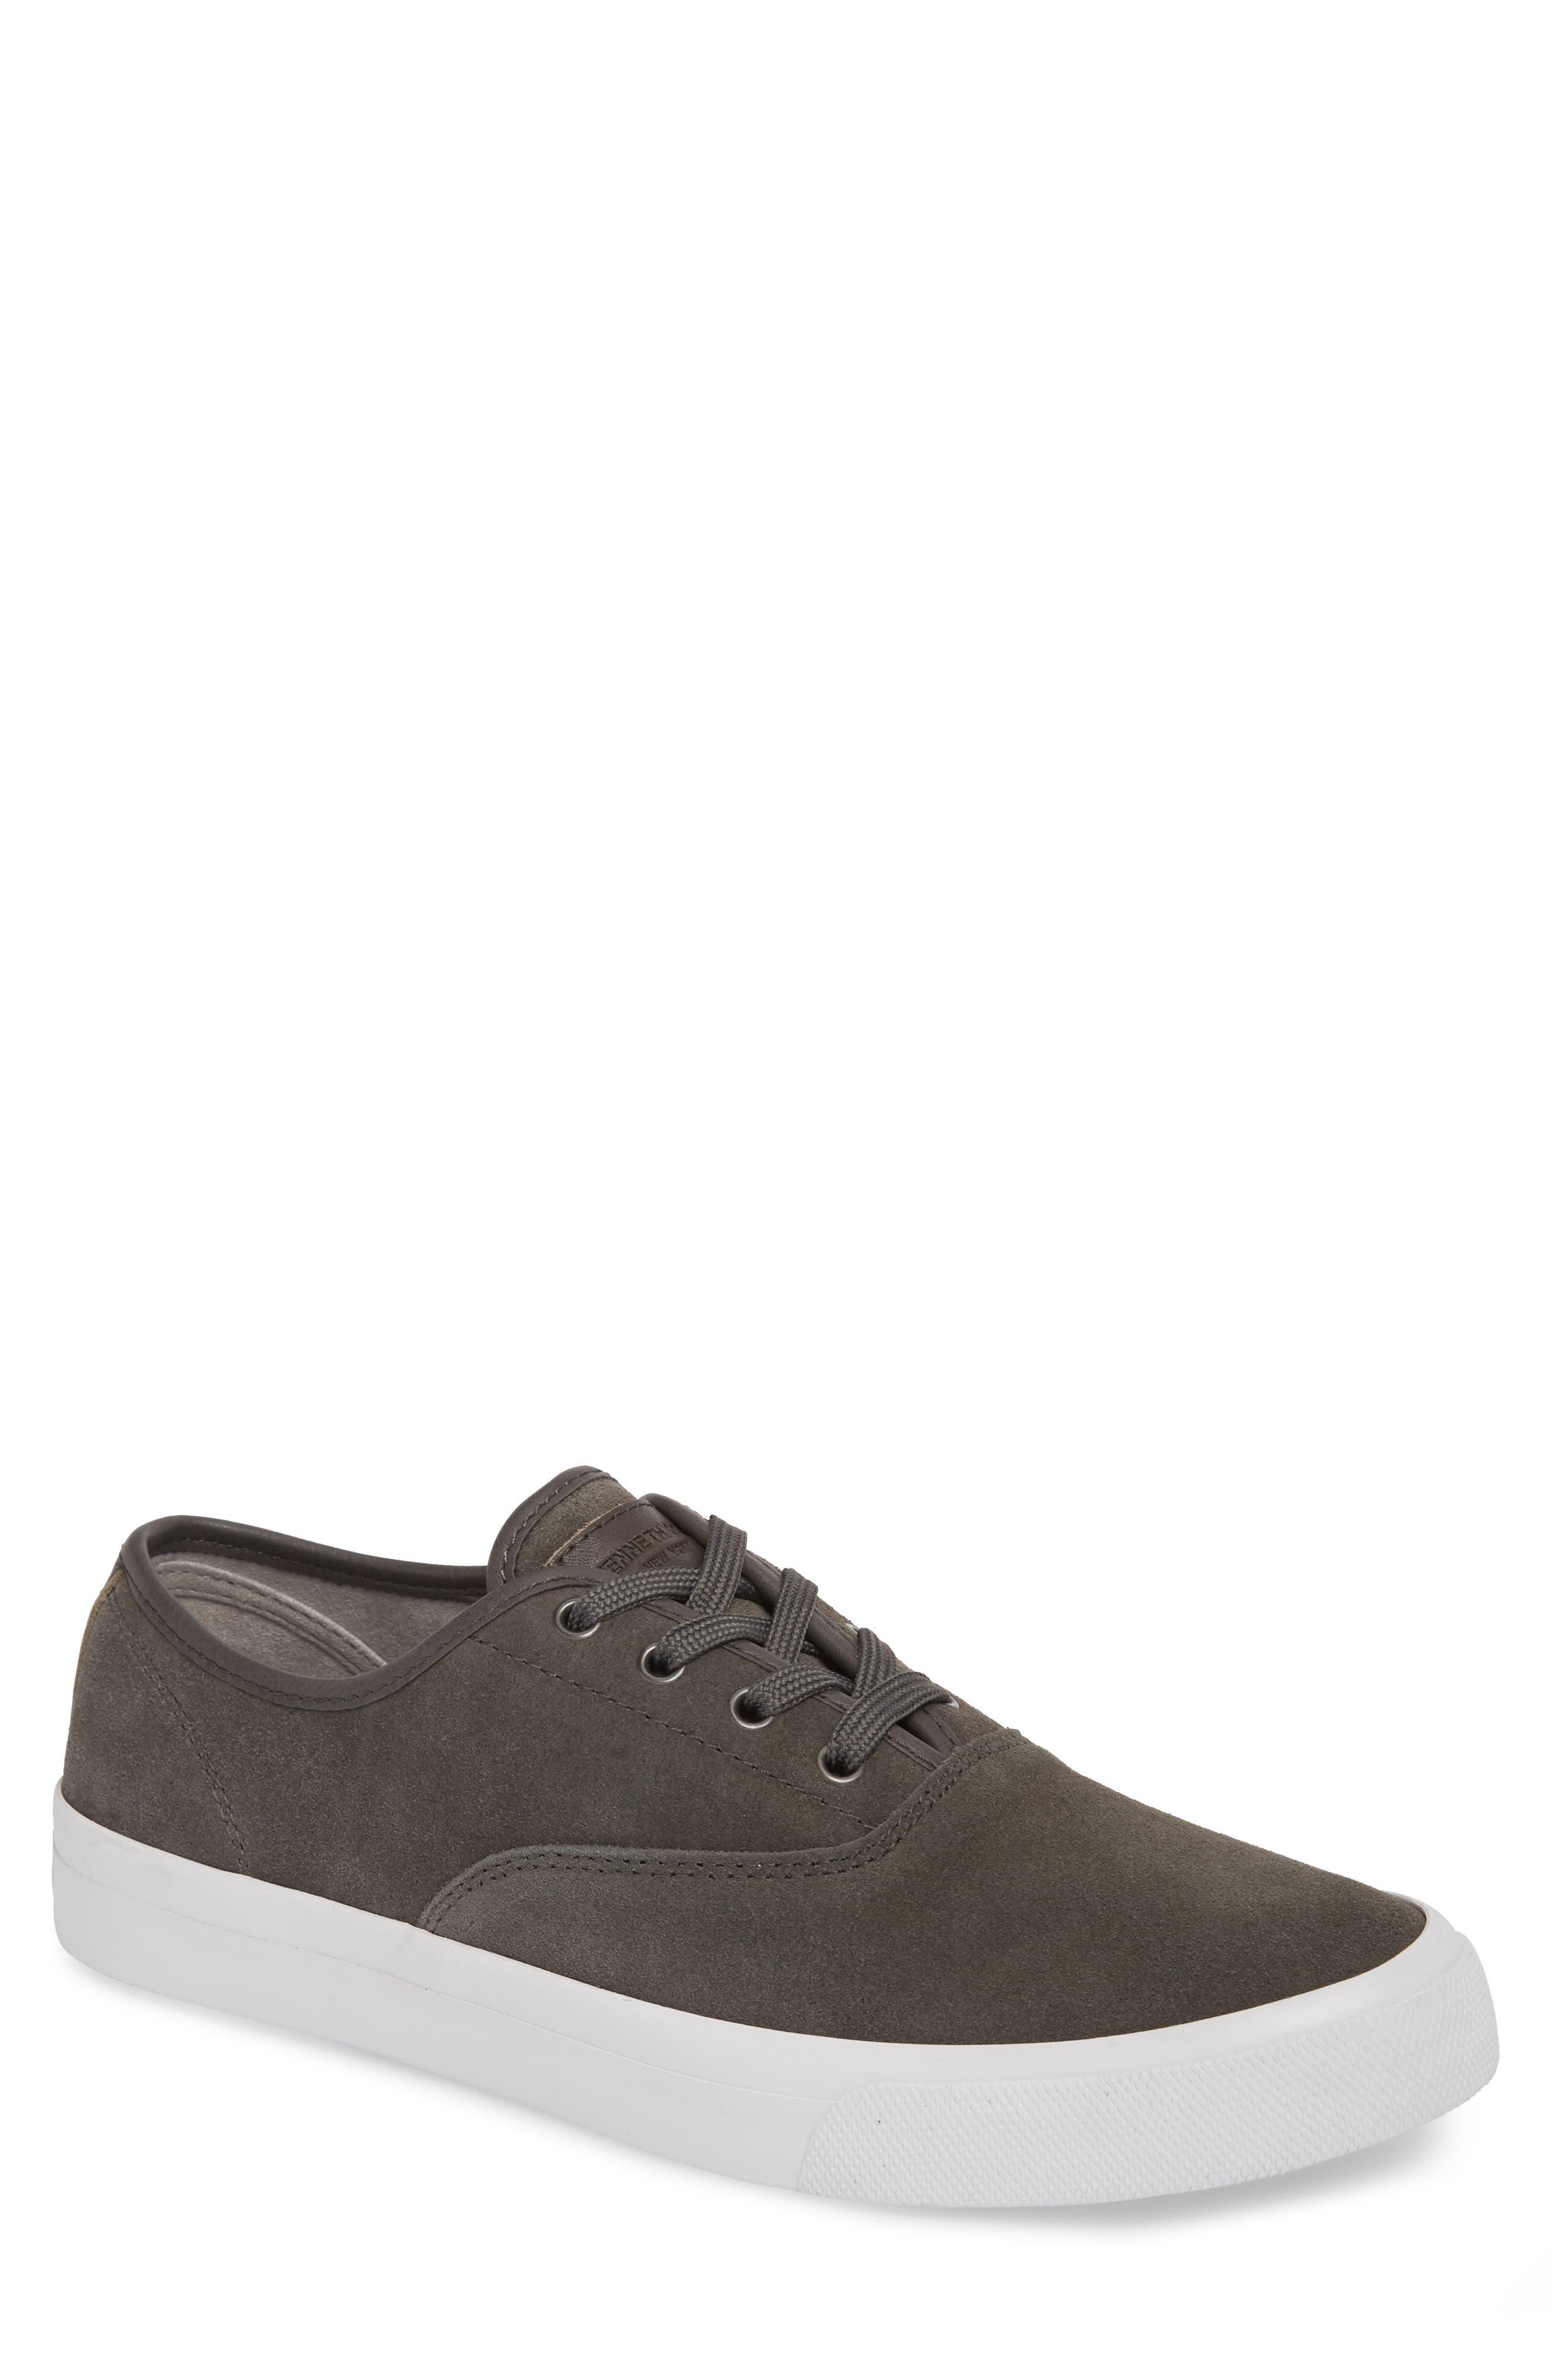 KENNETH COLE NEW YORK, Toor Low Top Sneaker, Main thumbnail 1, color, GREY COMBO SUEDE